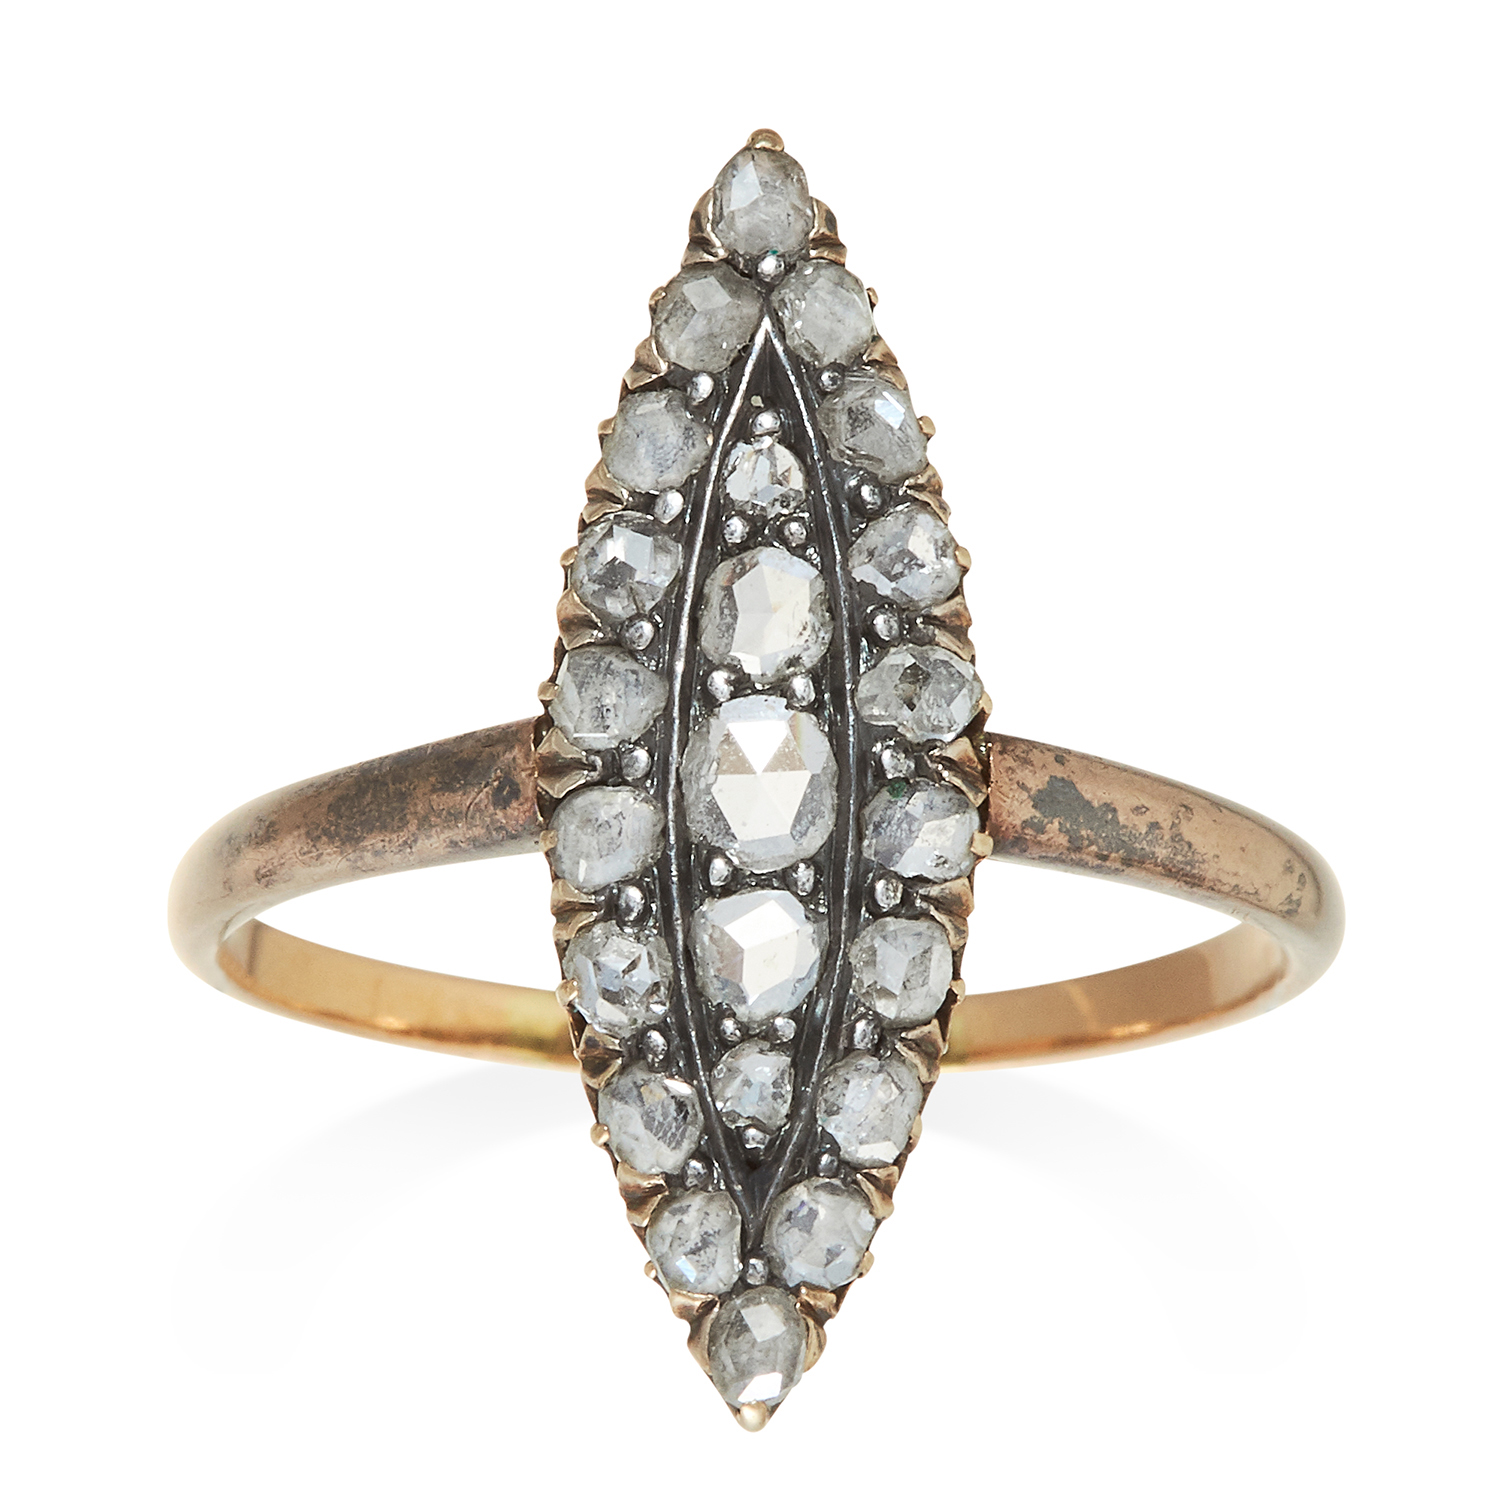 Los 301 - AN ANTIQUE DIAMOND DRESS RING in yellow gold and silver, the marquise face jewelled with rose cut